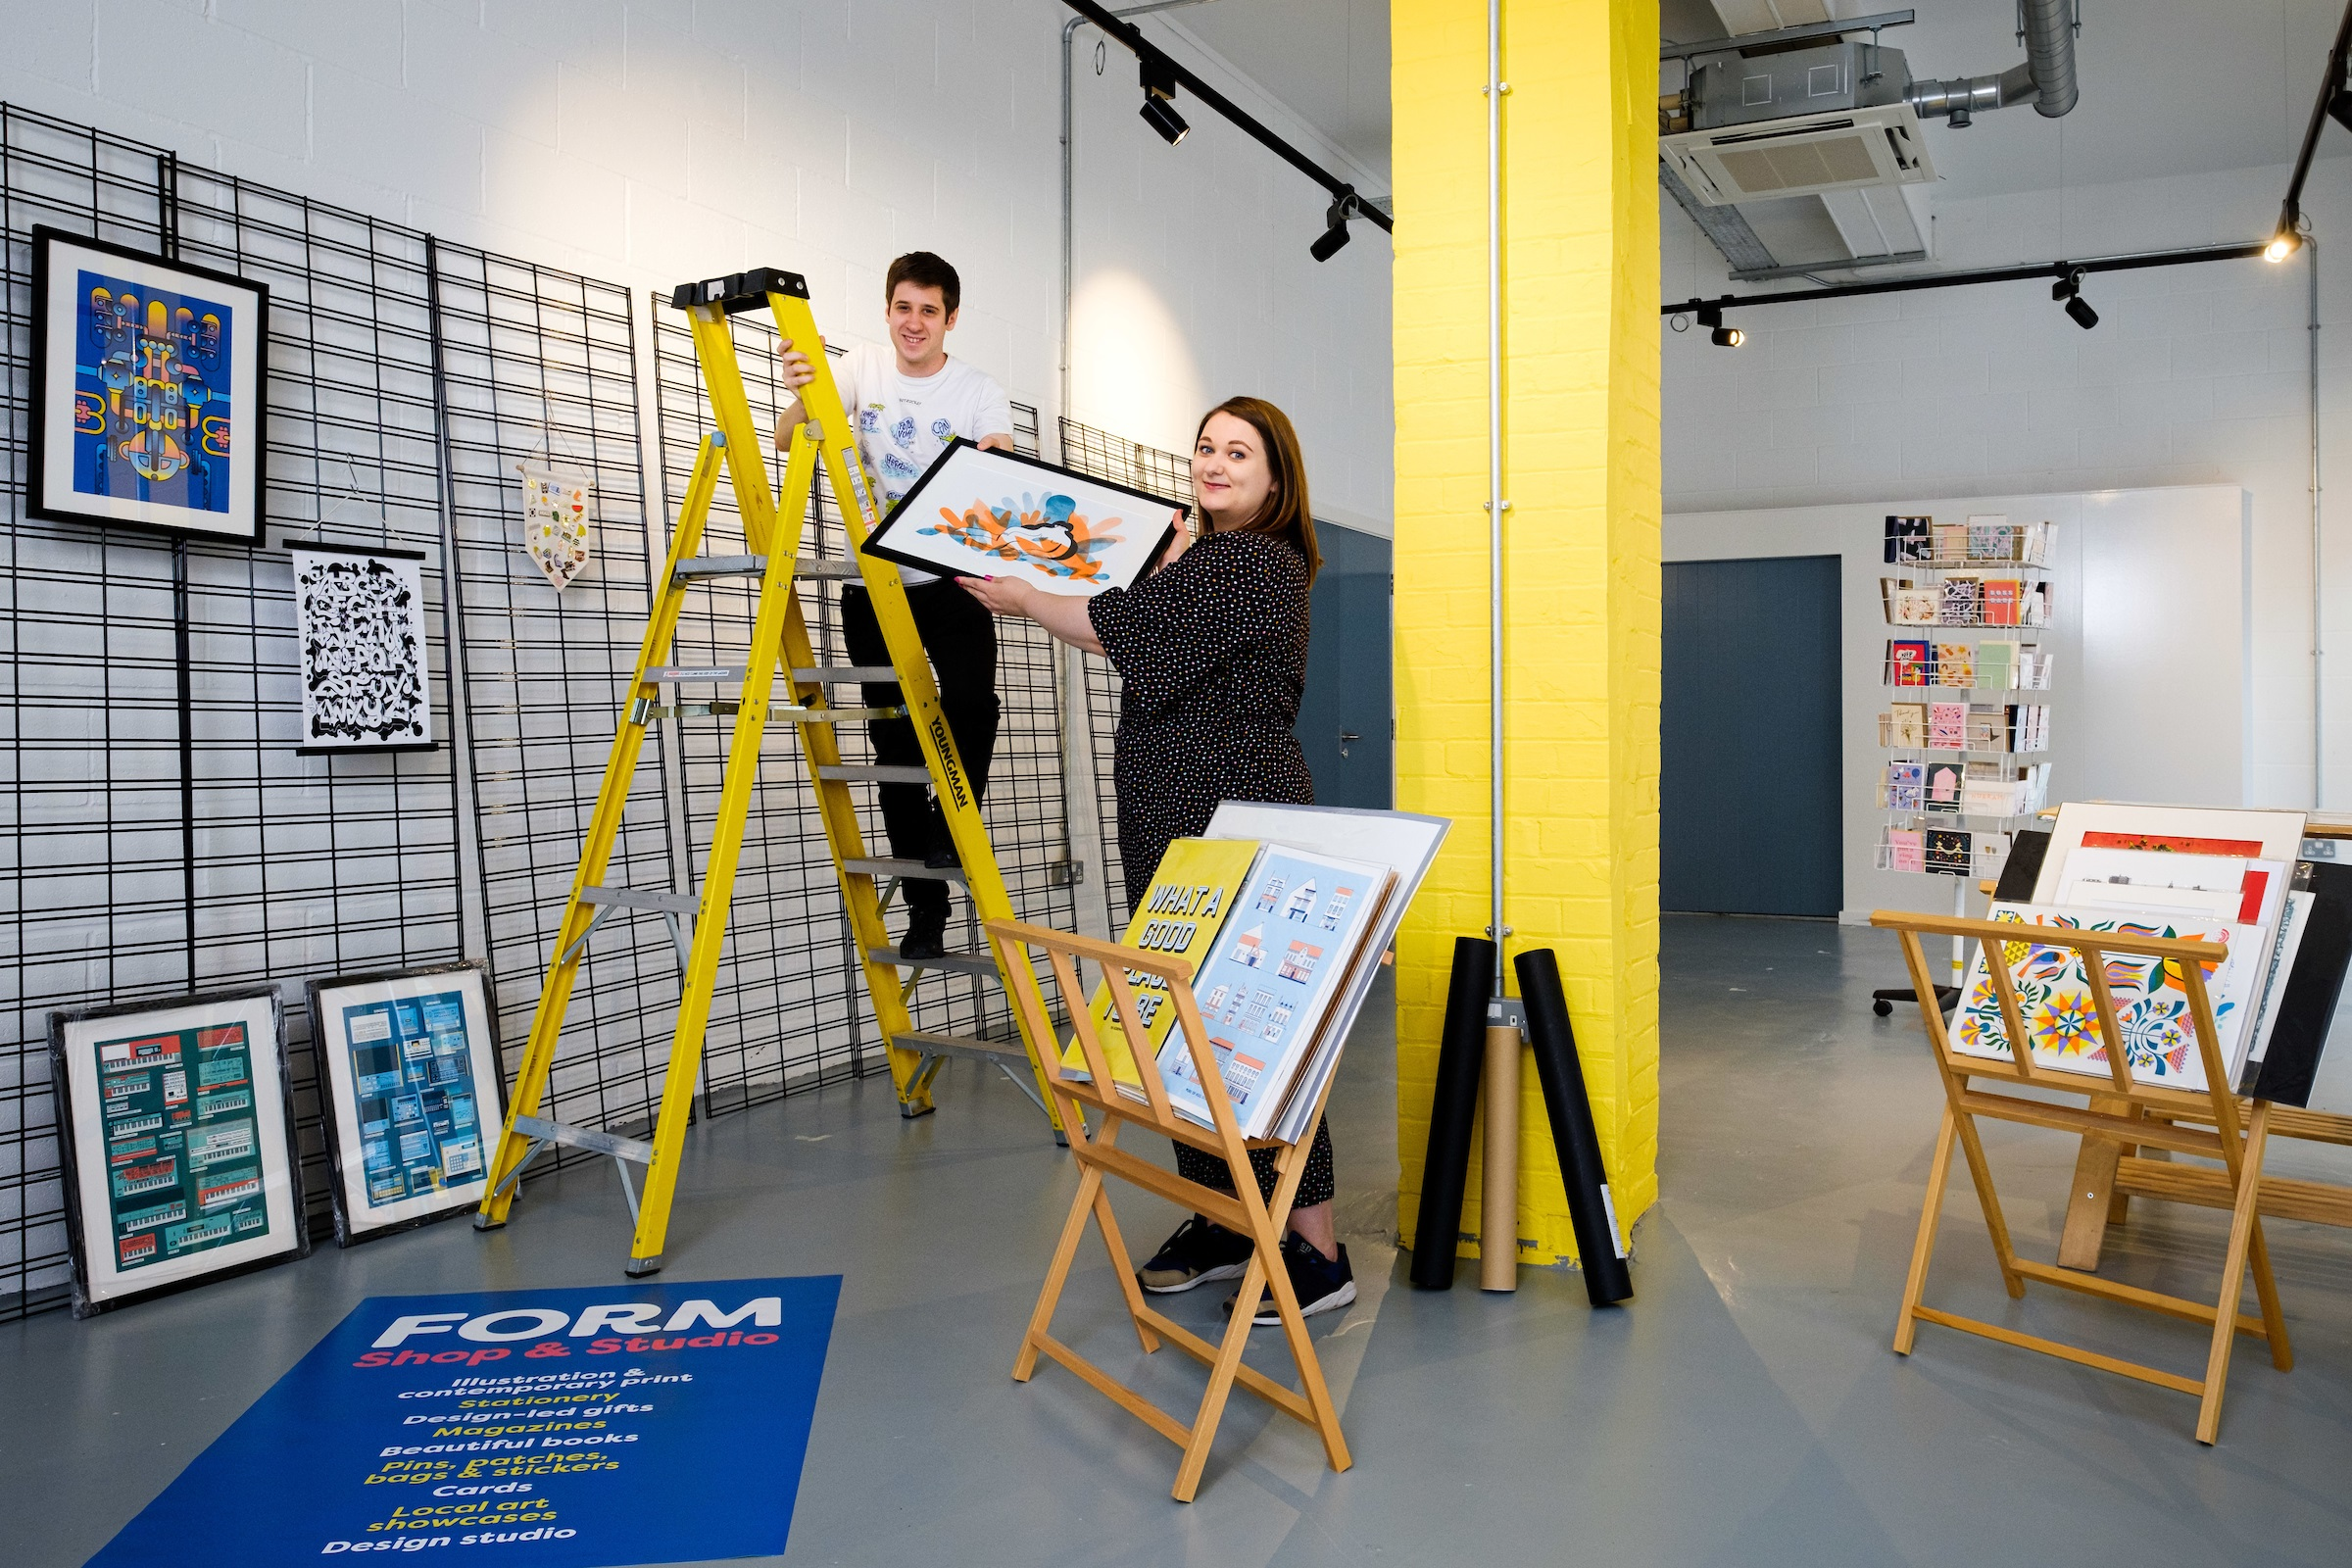 The move will enable Joseph Cox and Alice Thomson to build on their work with local artists and creatives, offering new opportunities to promote Hull's creative talent.